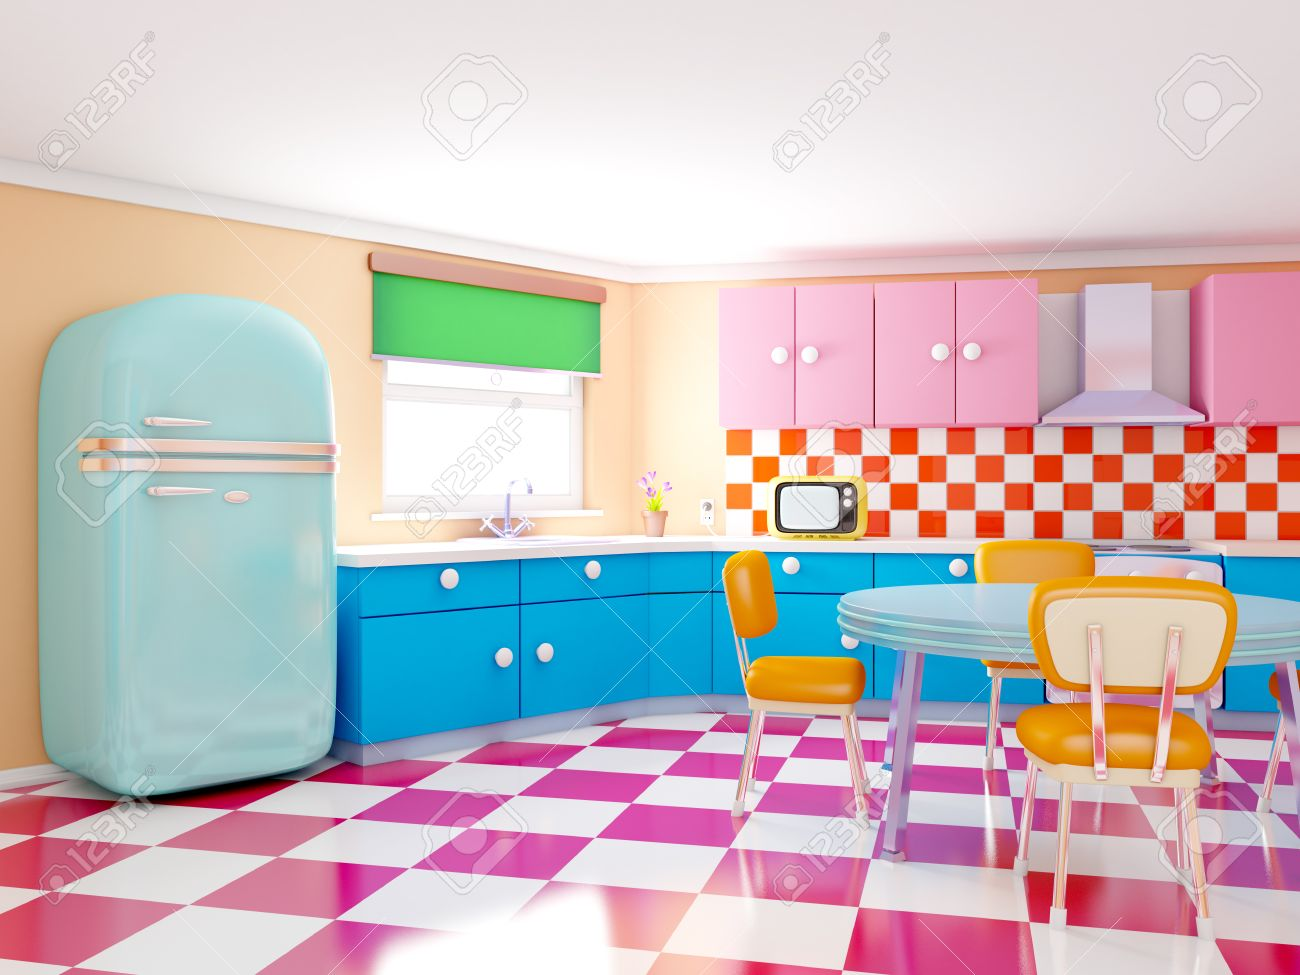 Retro Kitchen Floor Retro Kitchen In Cartoon Style With Checkered Floor 3d